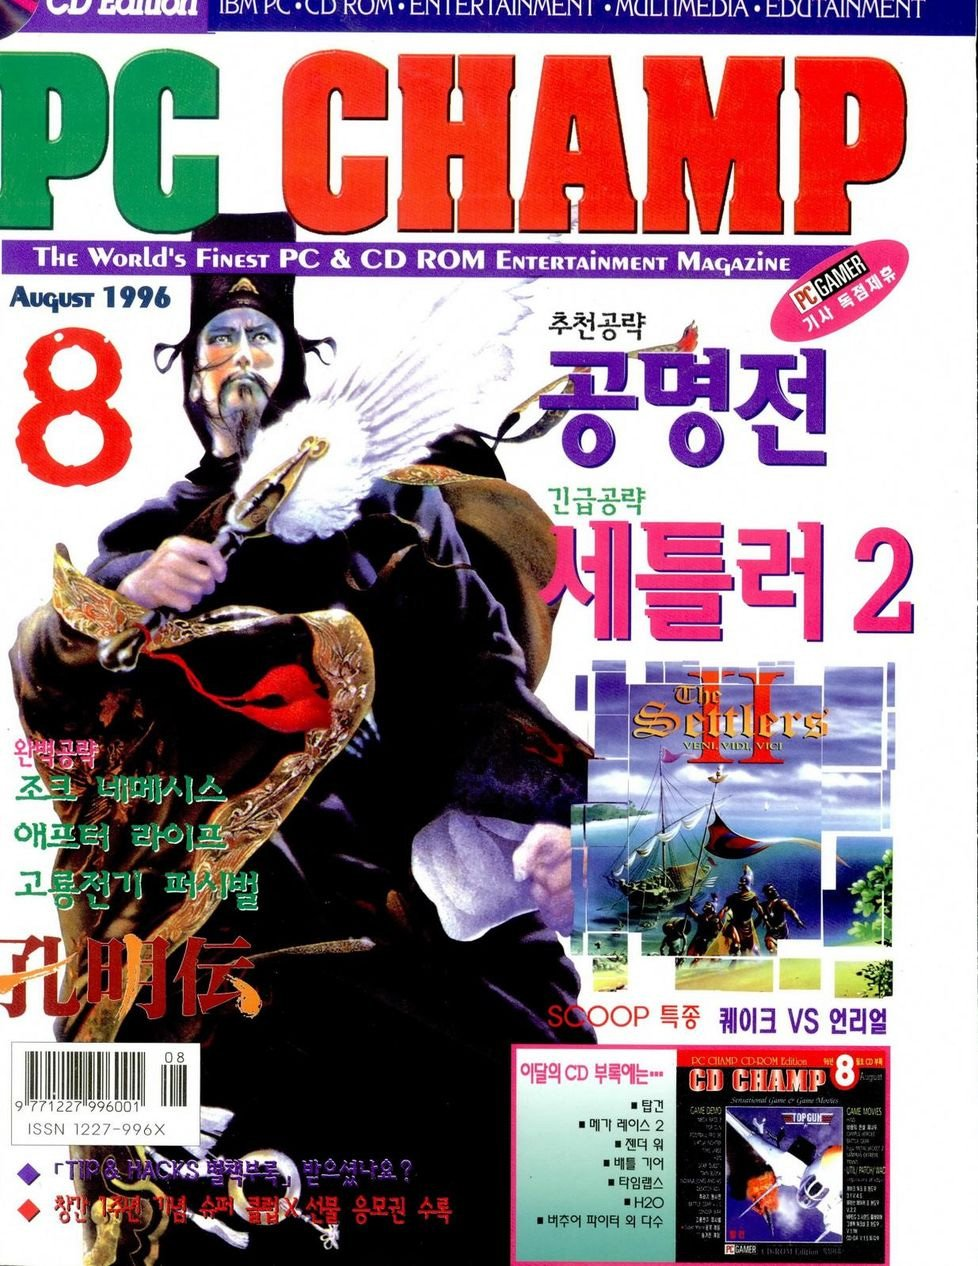 PC Champ Issue 13 (August 1996)